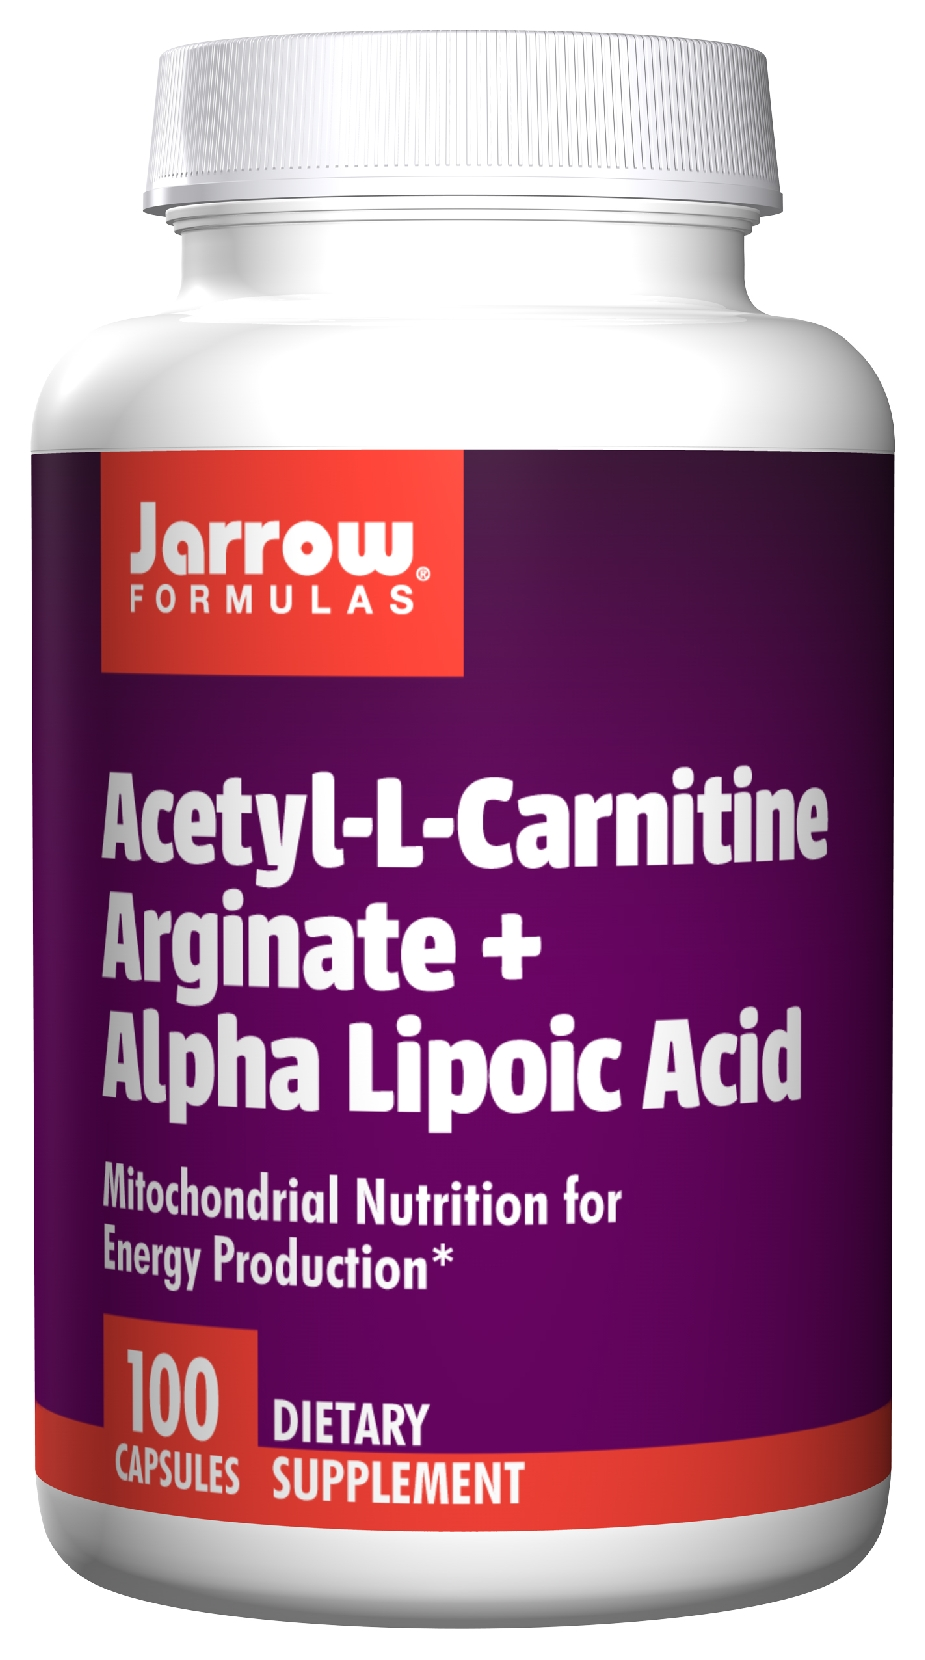 Acetyl L-Carnitine Arginate + Alpha Lipoic Acid 100 caps by Jarrow Formulas